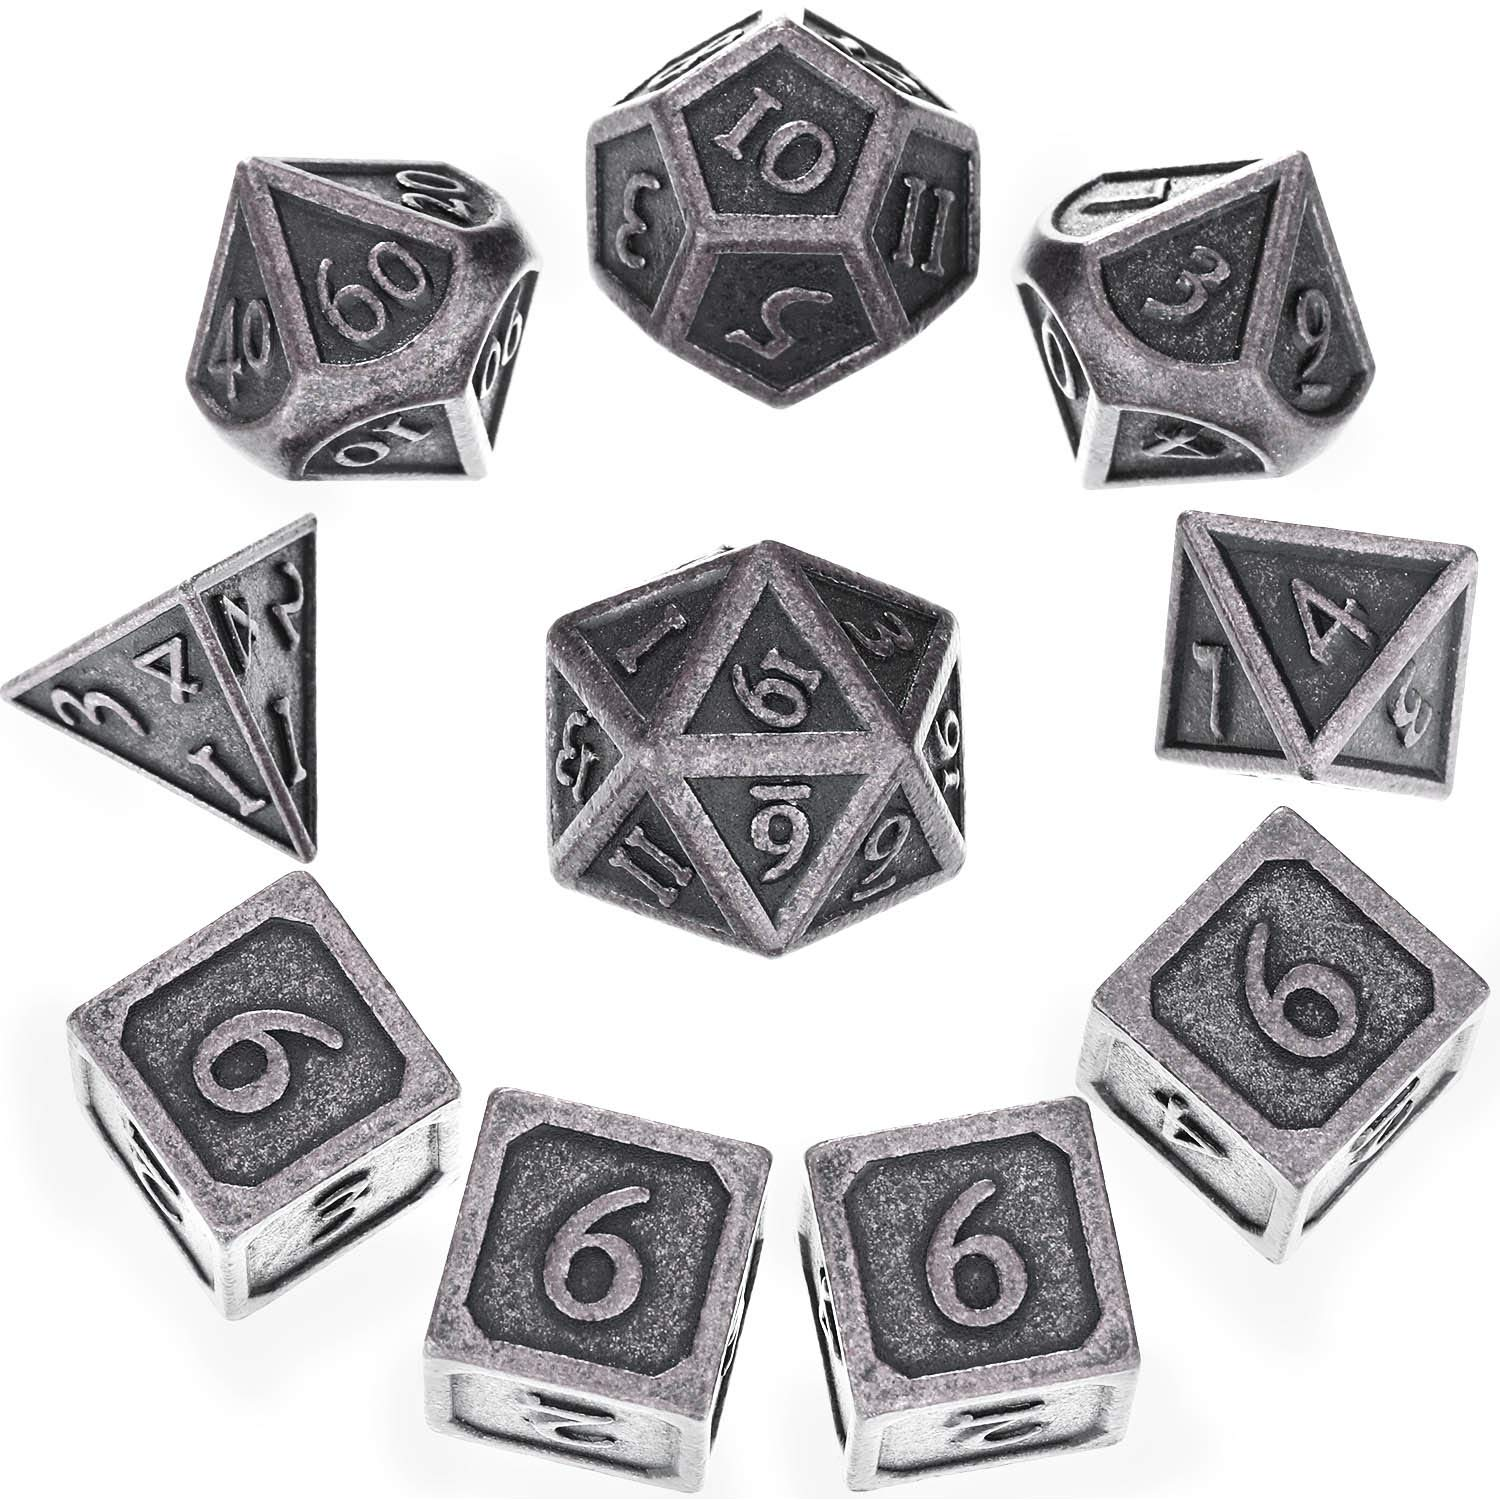 Hestya 10 Pieces Metal Dices Set DND Game Polyhedral Solid D&D Dice Set with Storage Bag and Zinc Alloy with Printed Numbers for Role Playing Game Dungeons and Dragons, Math Teaching (New Nickel)